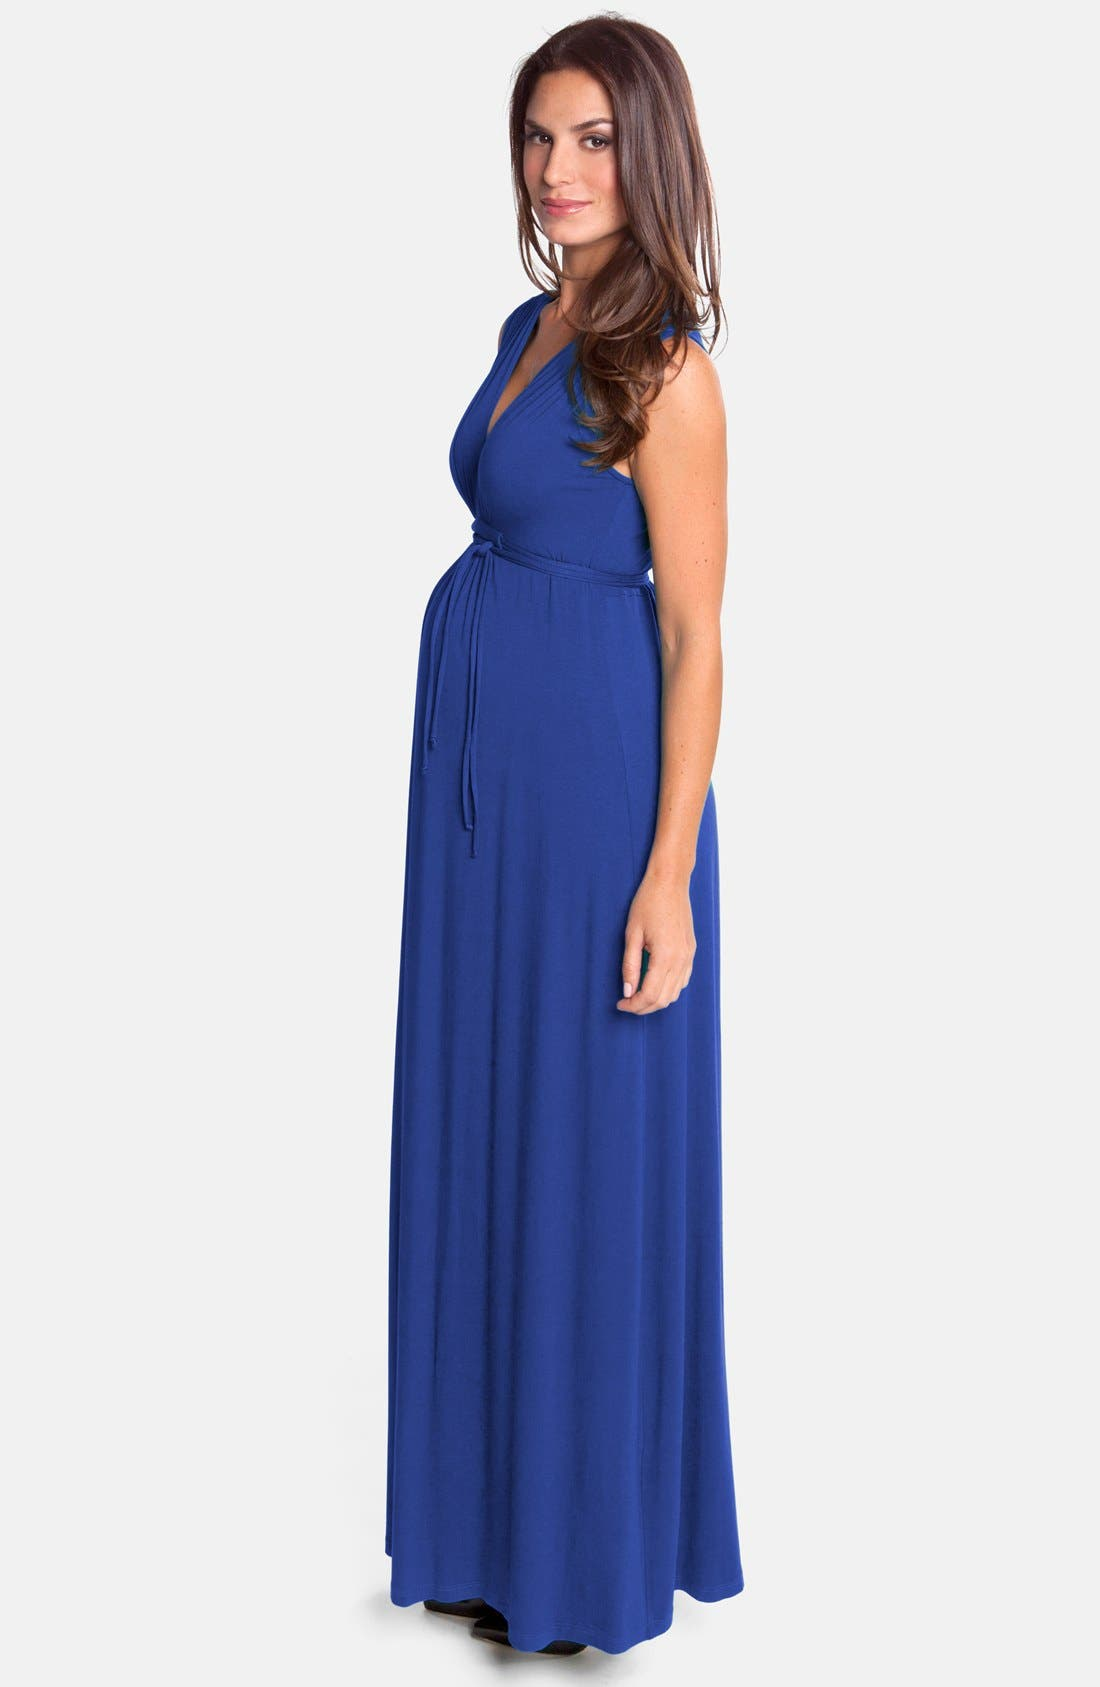 Lucy Maternity Maxi Dress,                             Alternate thumbnail 4, color,                             TRUE BLUE